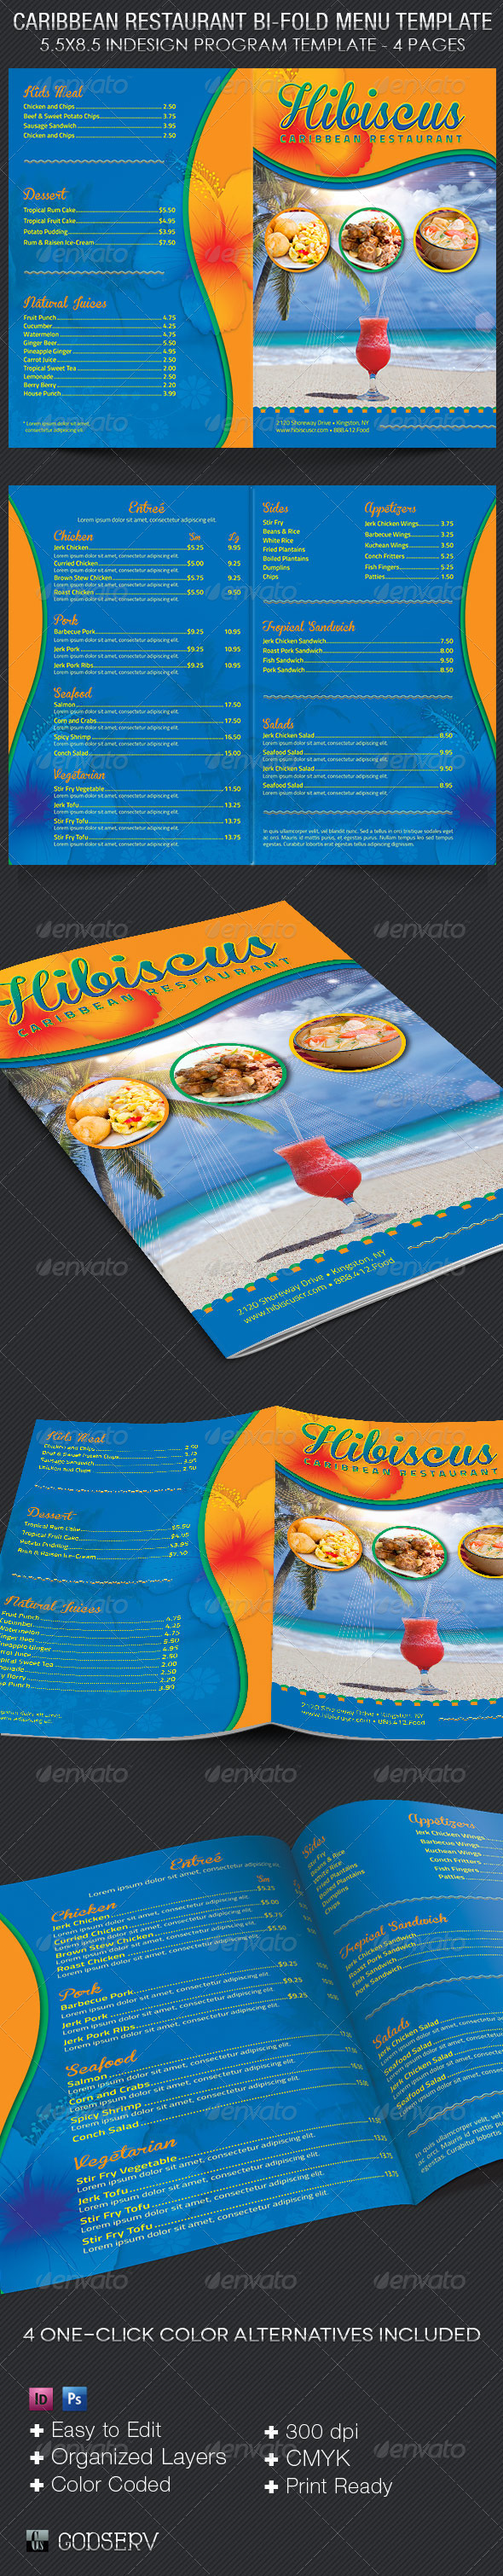 Caribbean Restaurant Menu Template